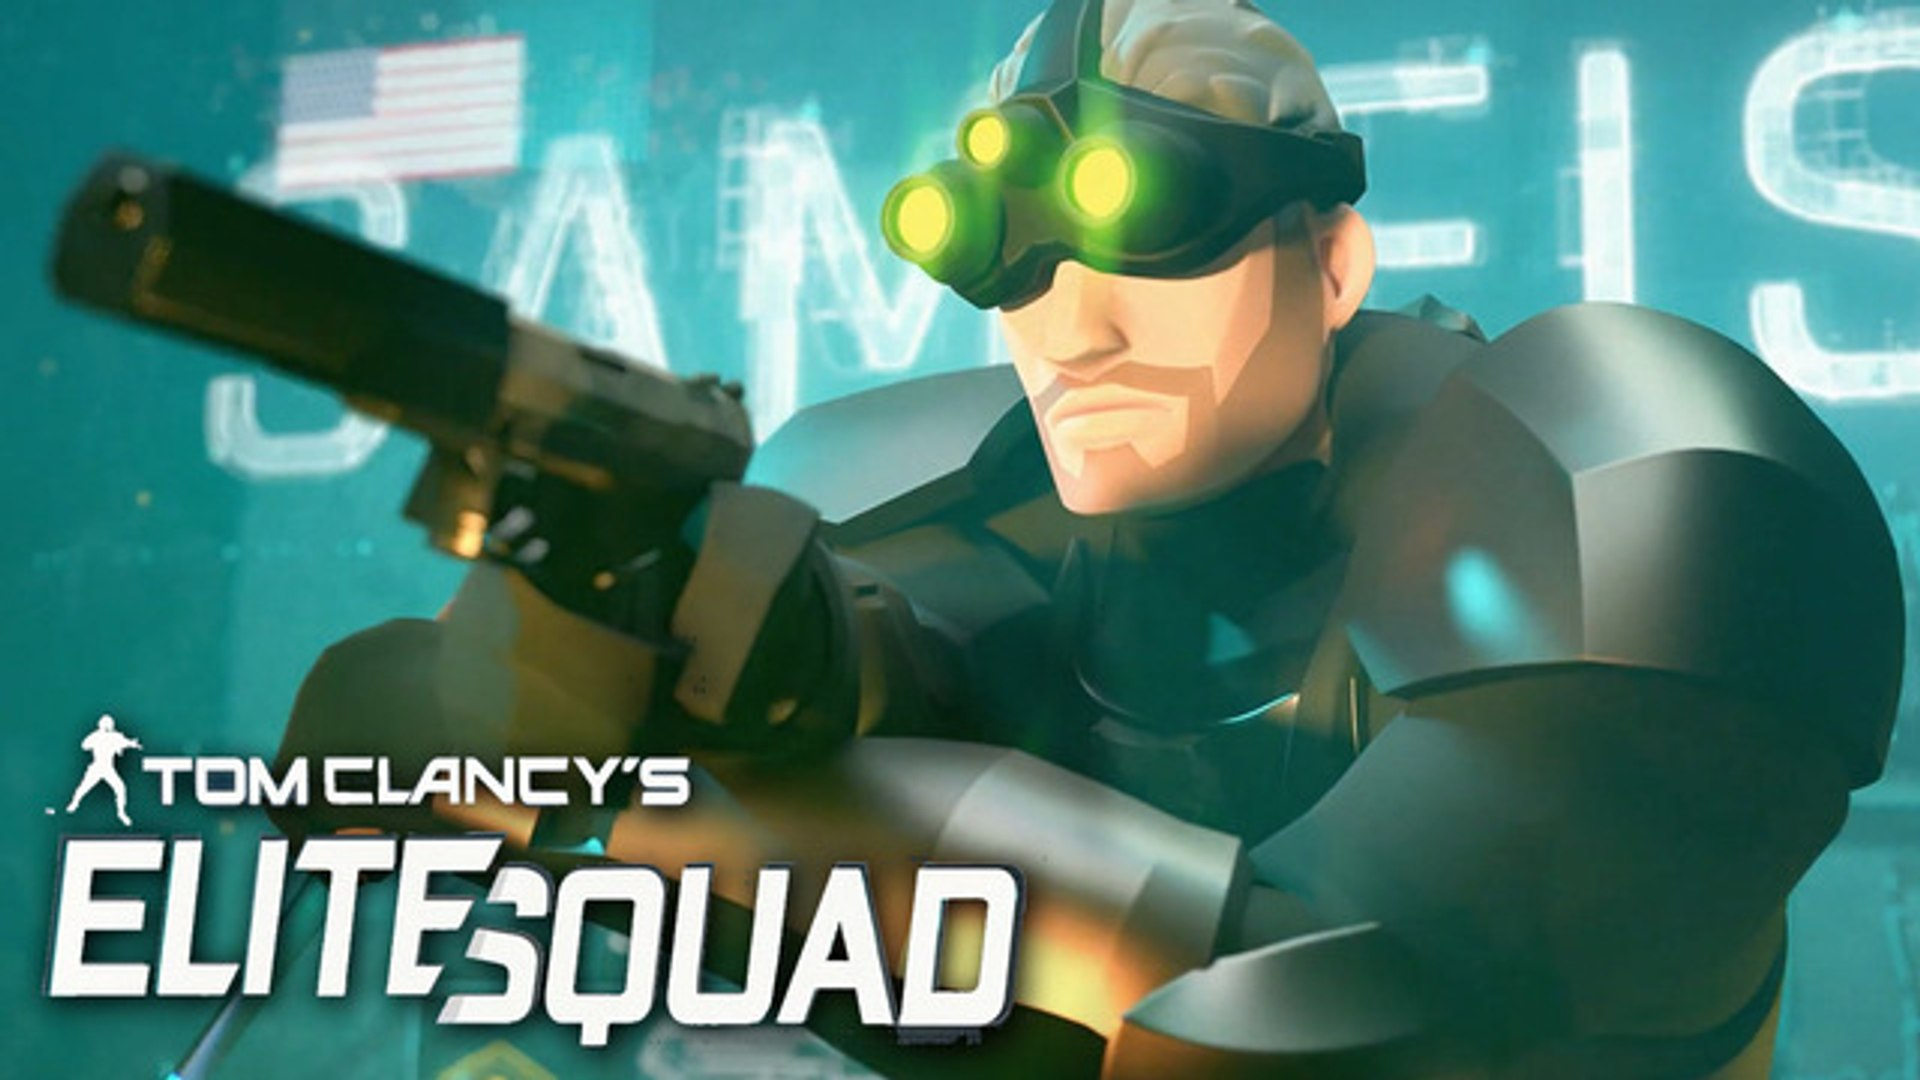 elite squad tom clancy's ubisoft